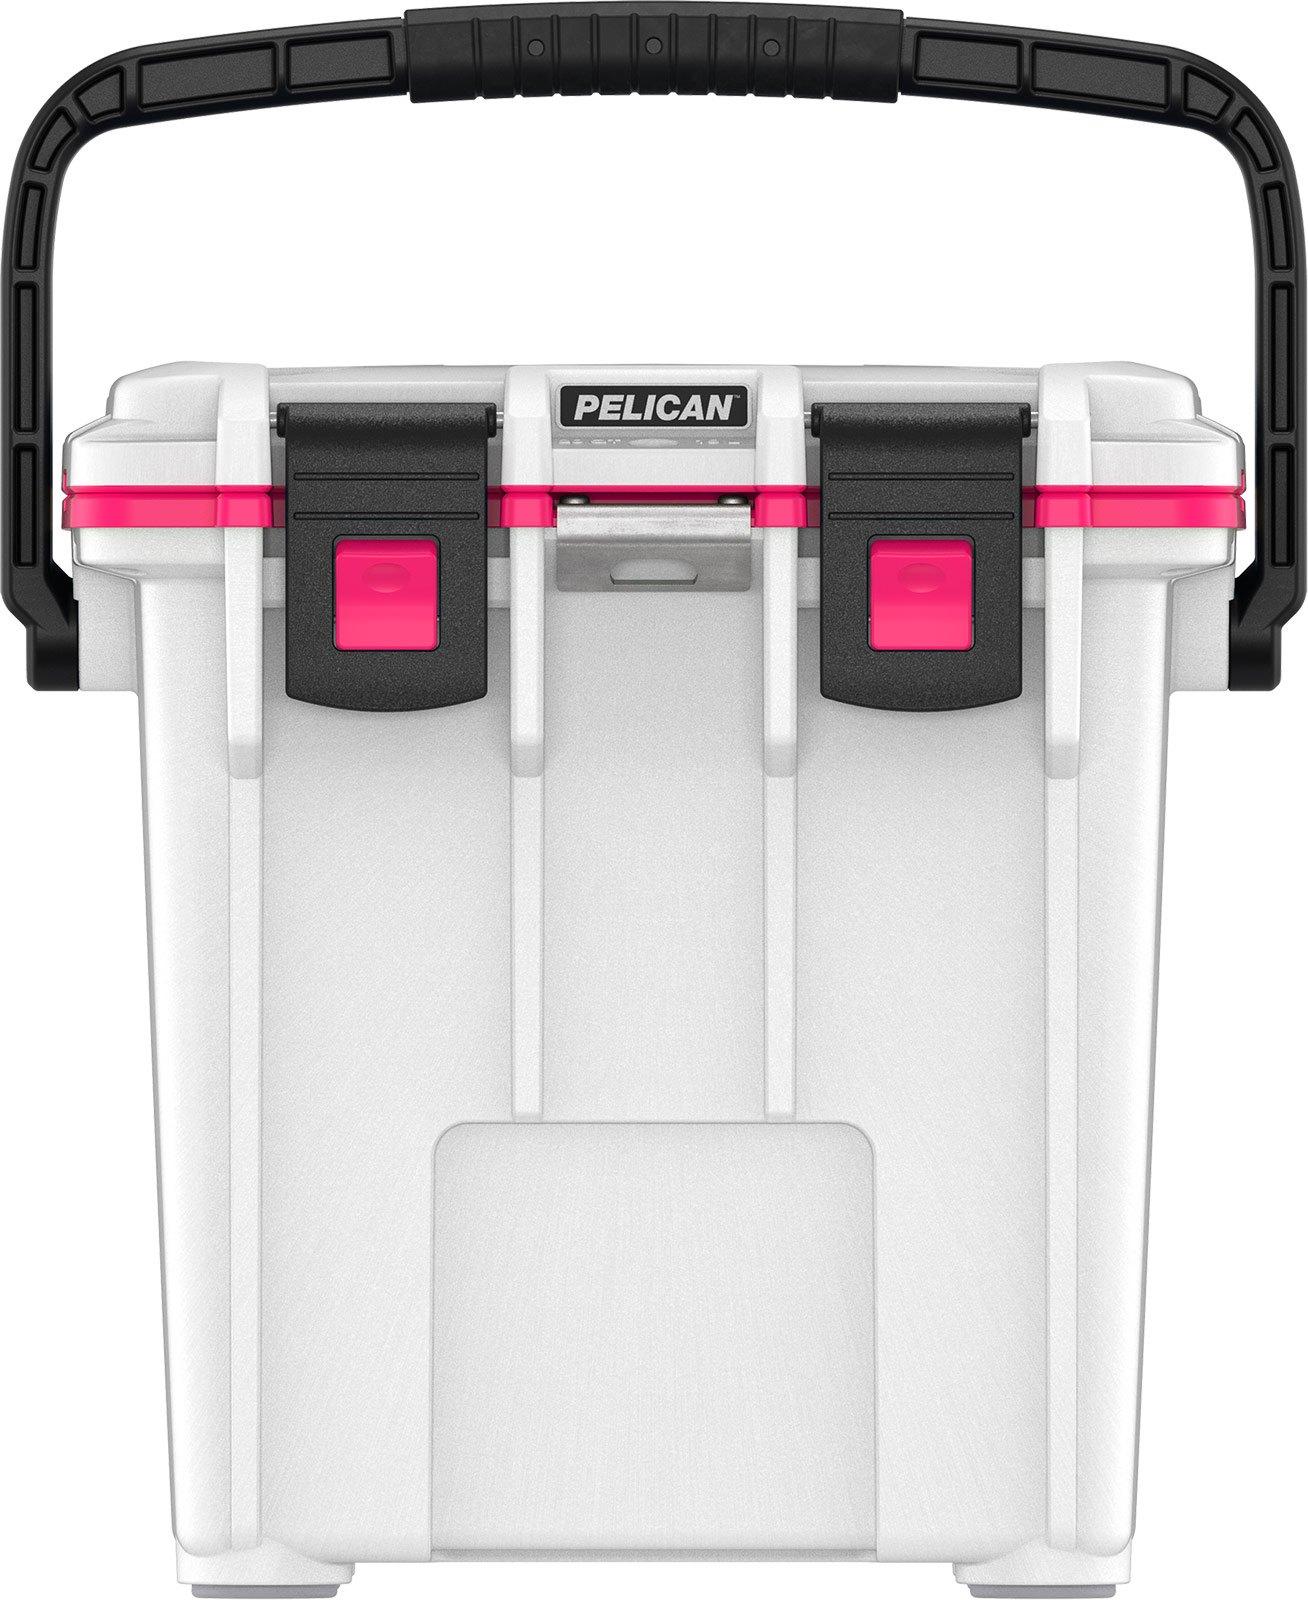 pelican 20qt cocktail drink cooler